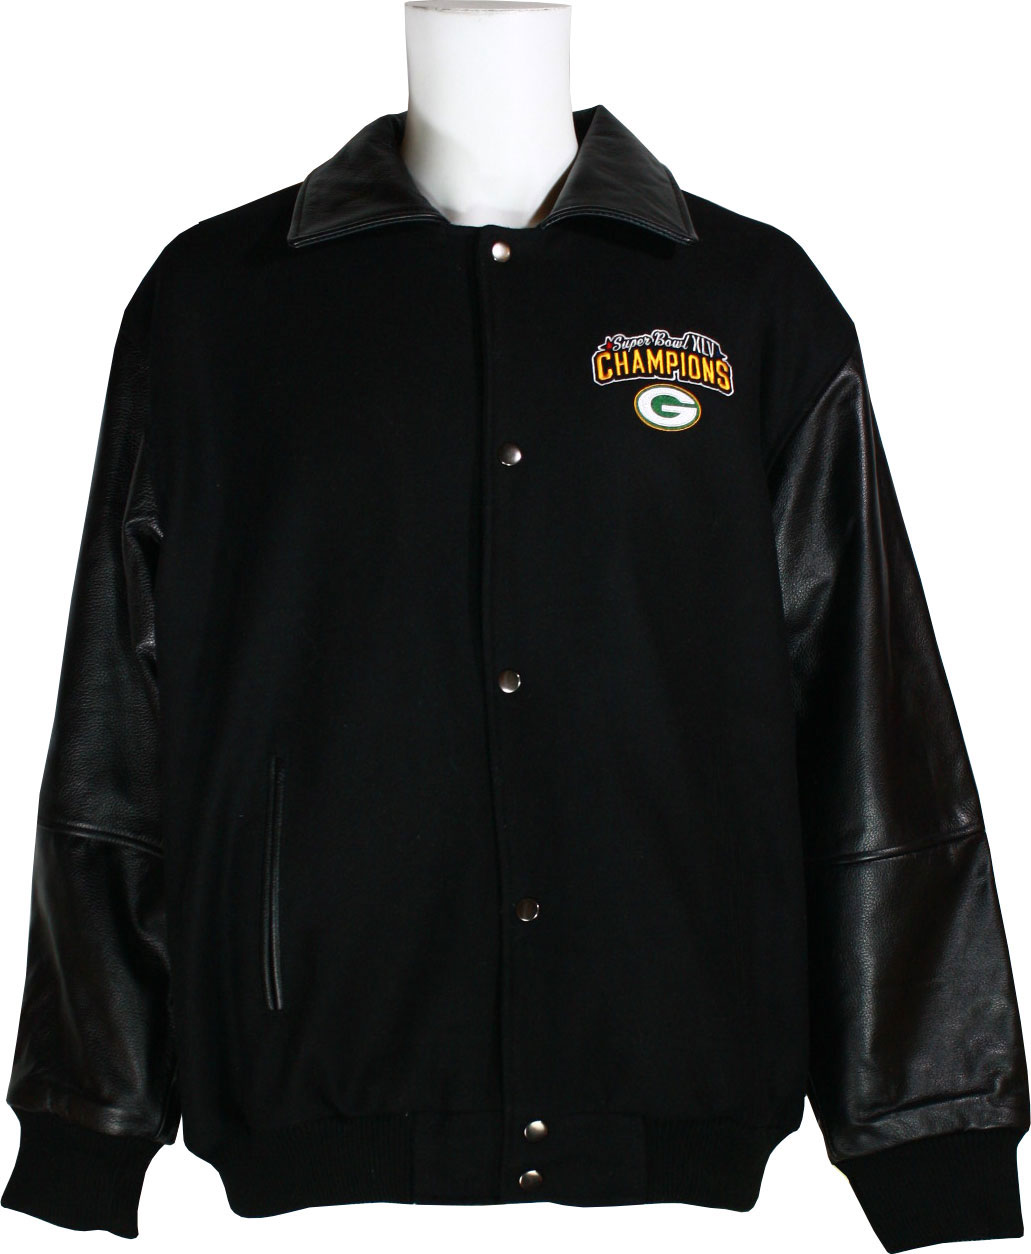 Green Bay Packers Super Bowl XLV Champions Men's Leather & Wool Jacket by G-III